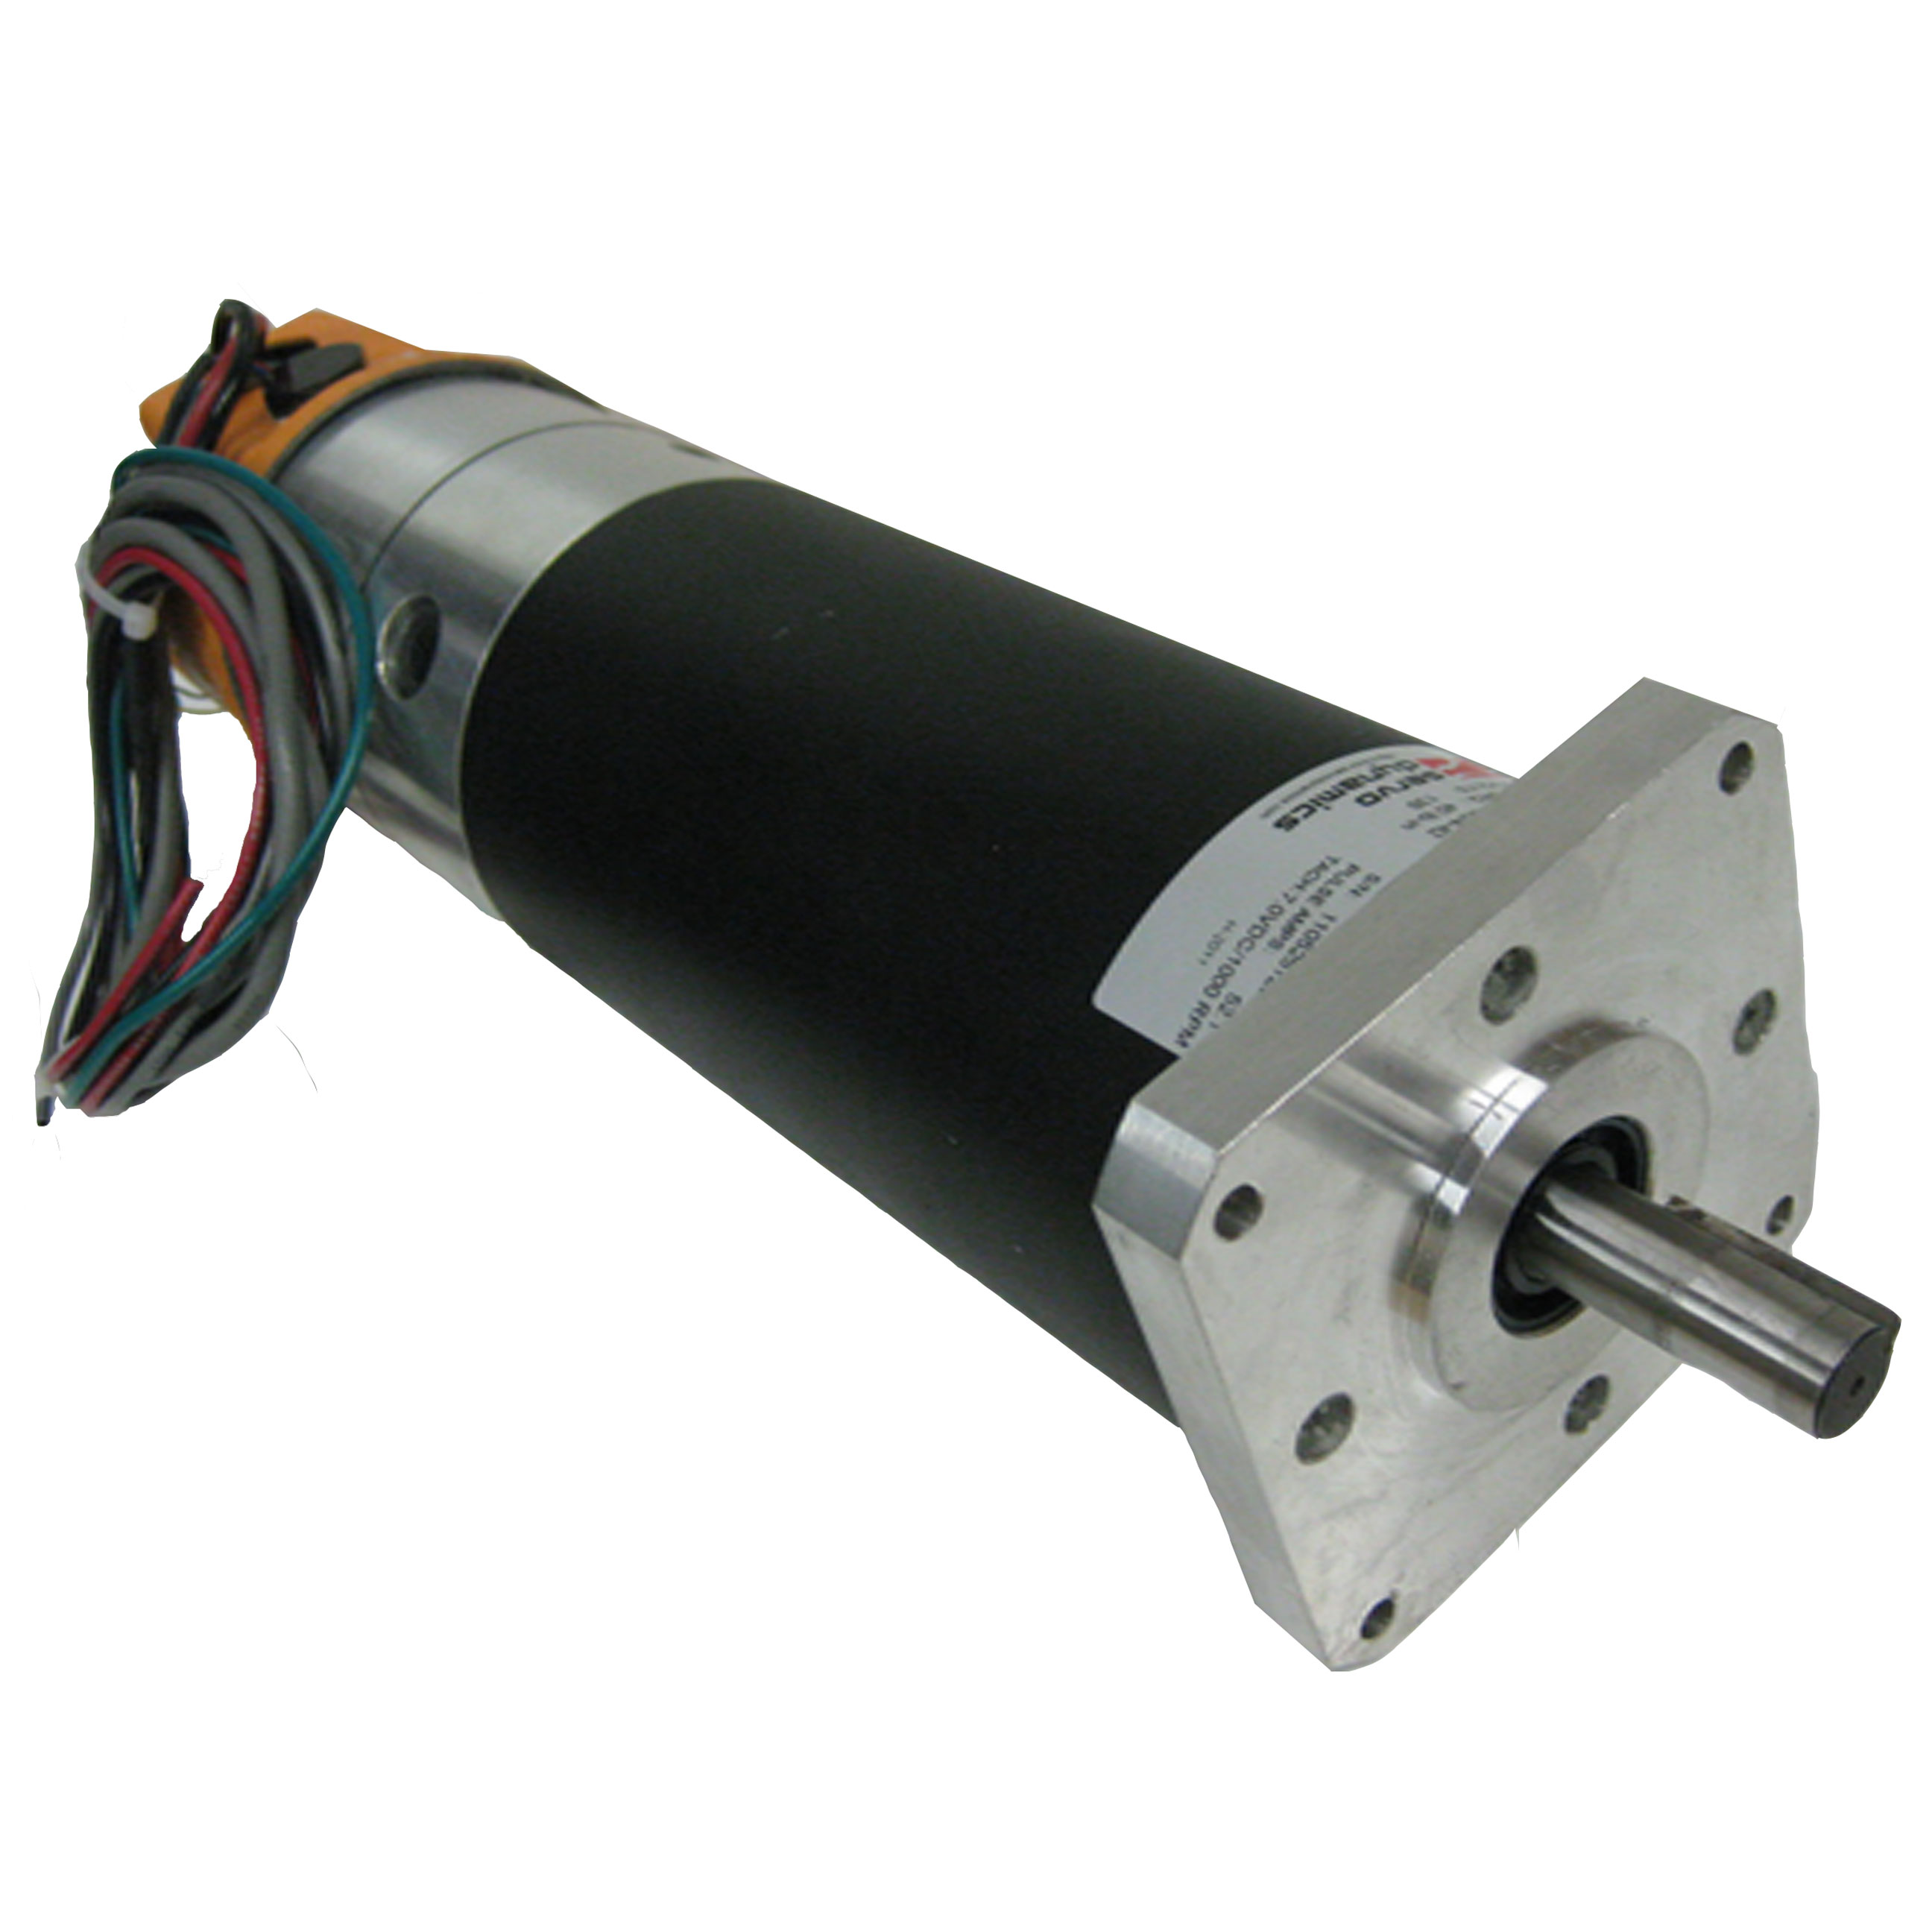 Servo Dynamics Mts30u4 42 Dc Brush Servo Motor Cnc Parts